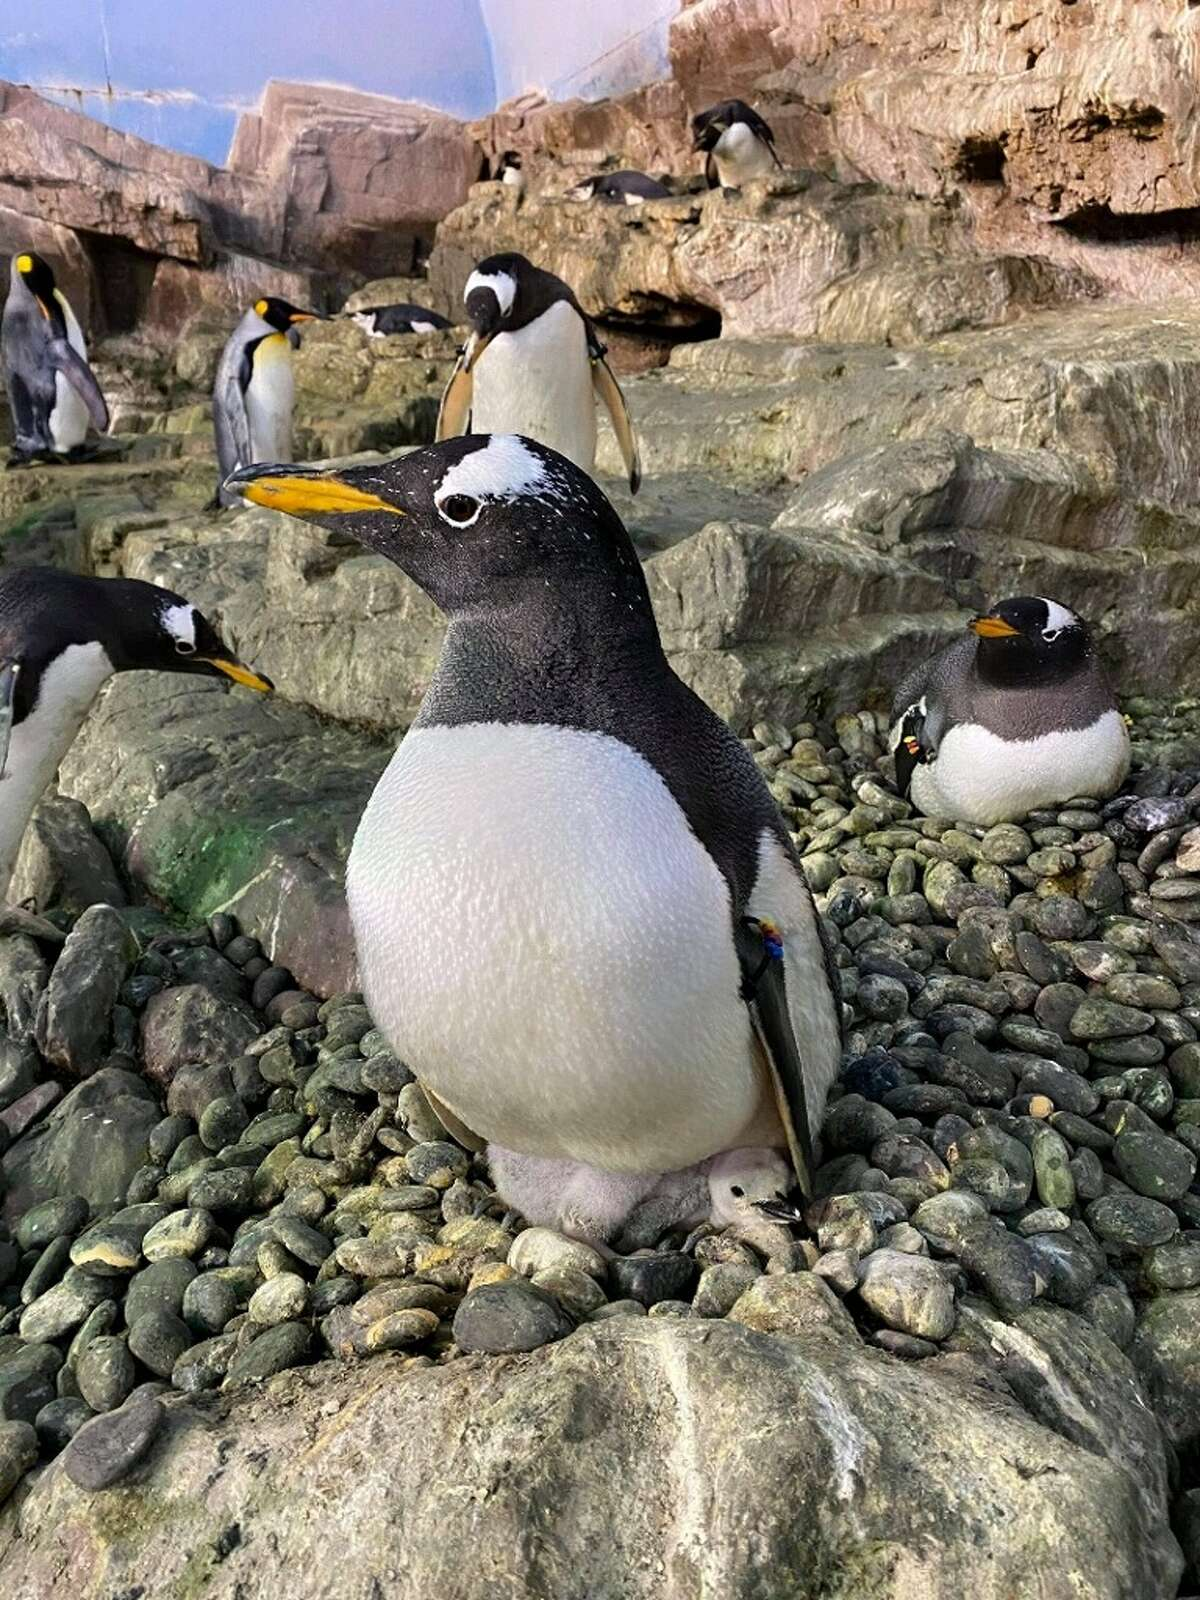 The two Gentoo penguins were given their own Chinstrap penguin egg during the last breeding season because the biological parents' nest was in a high traffic area for the larger King penguins, and officials were afraid the egg would be crushed or exposed to the cold.